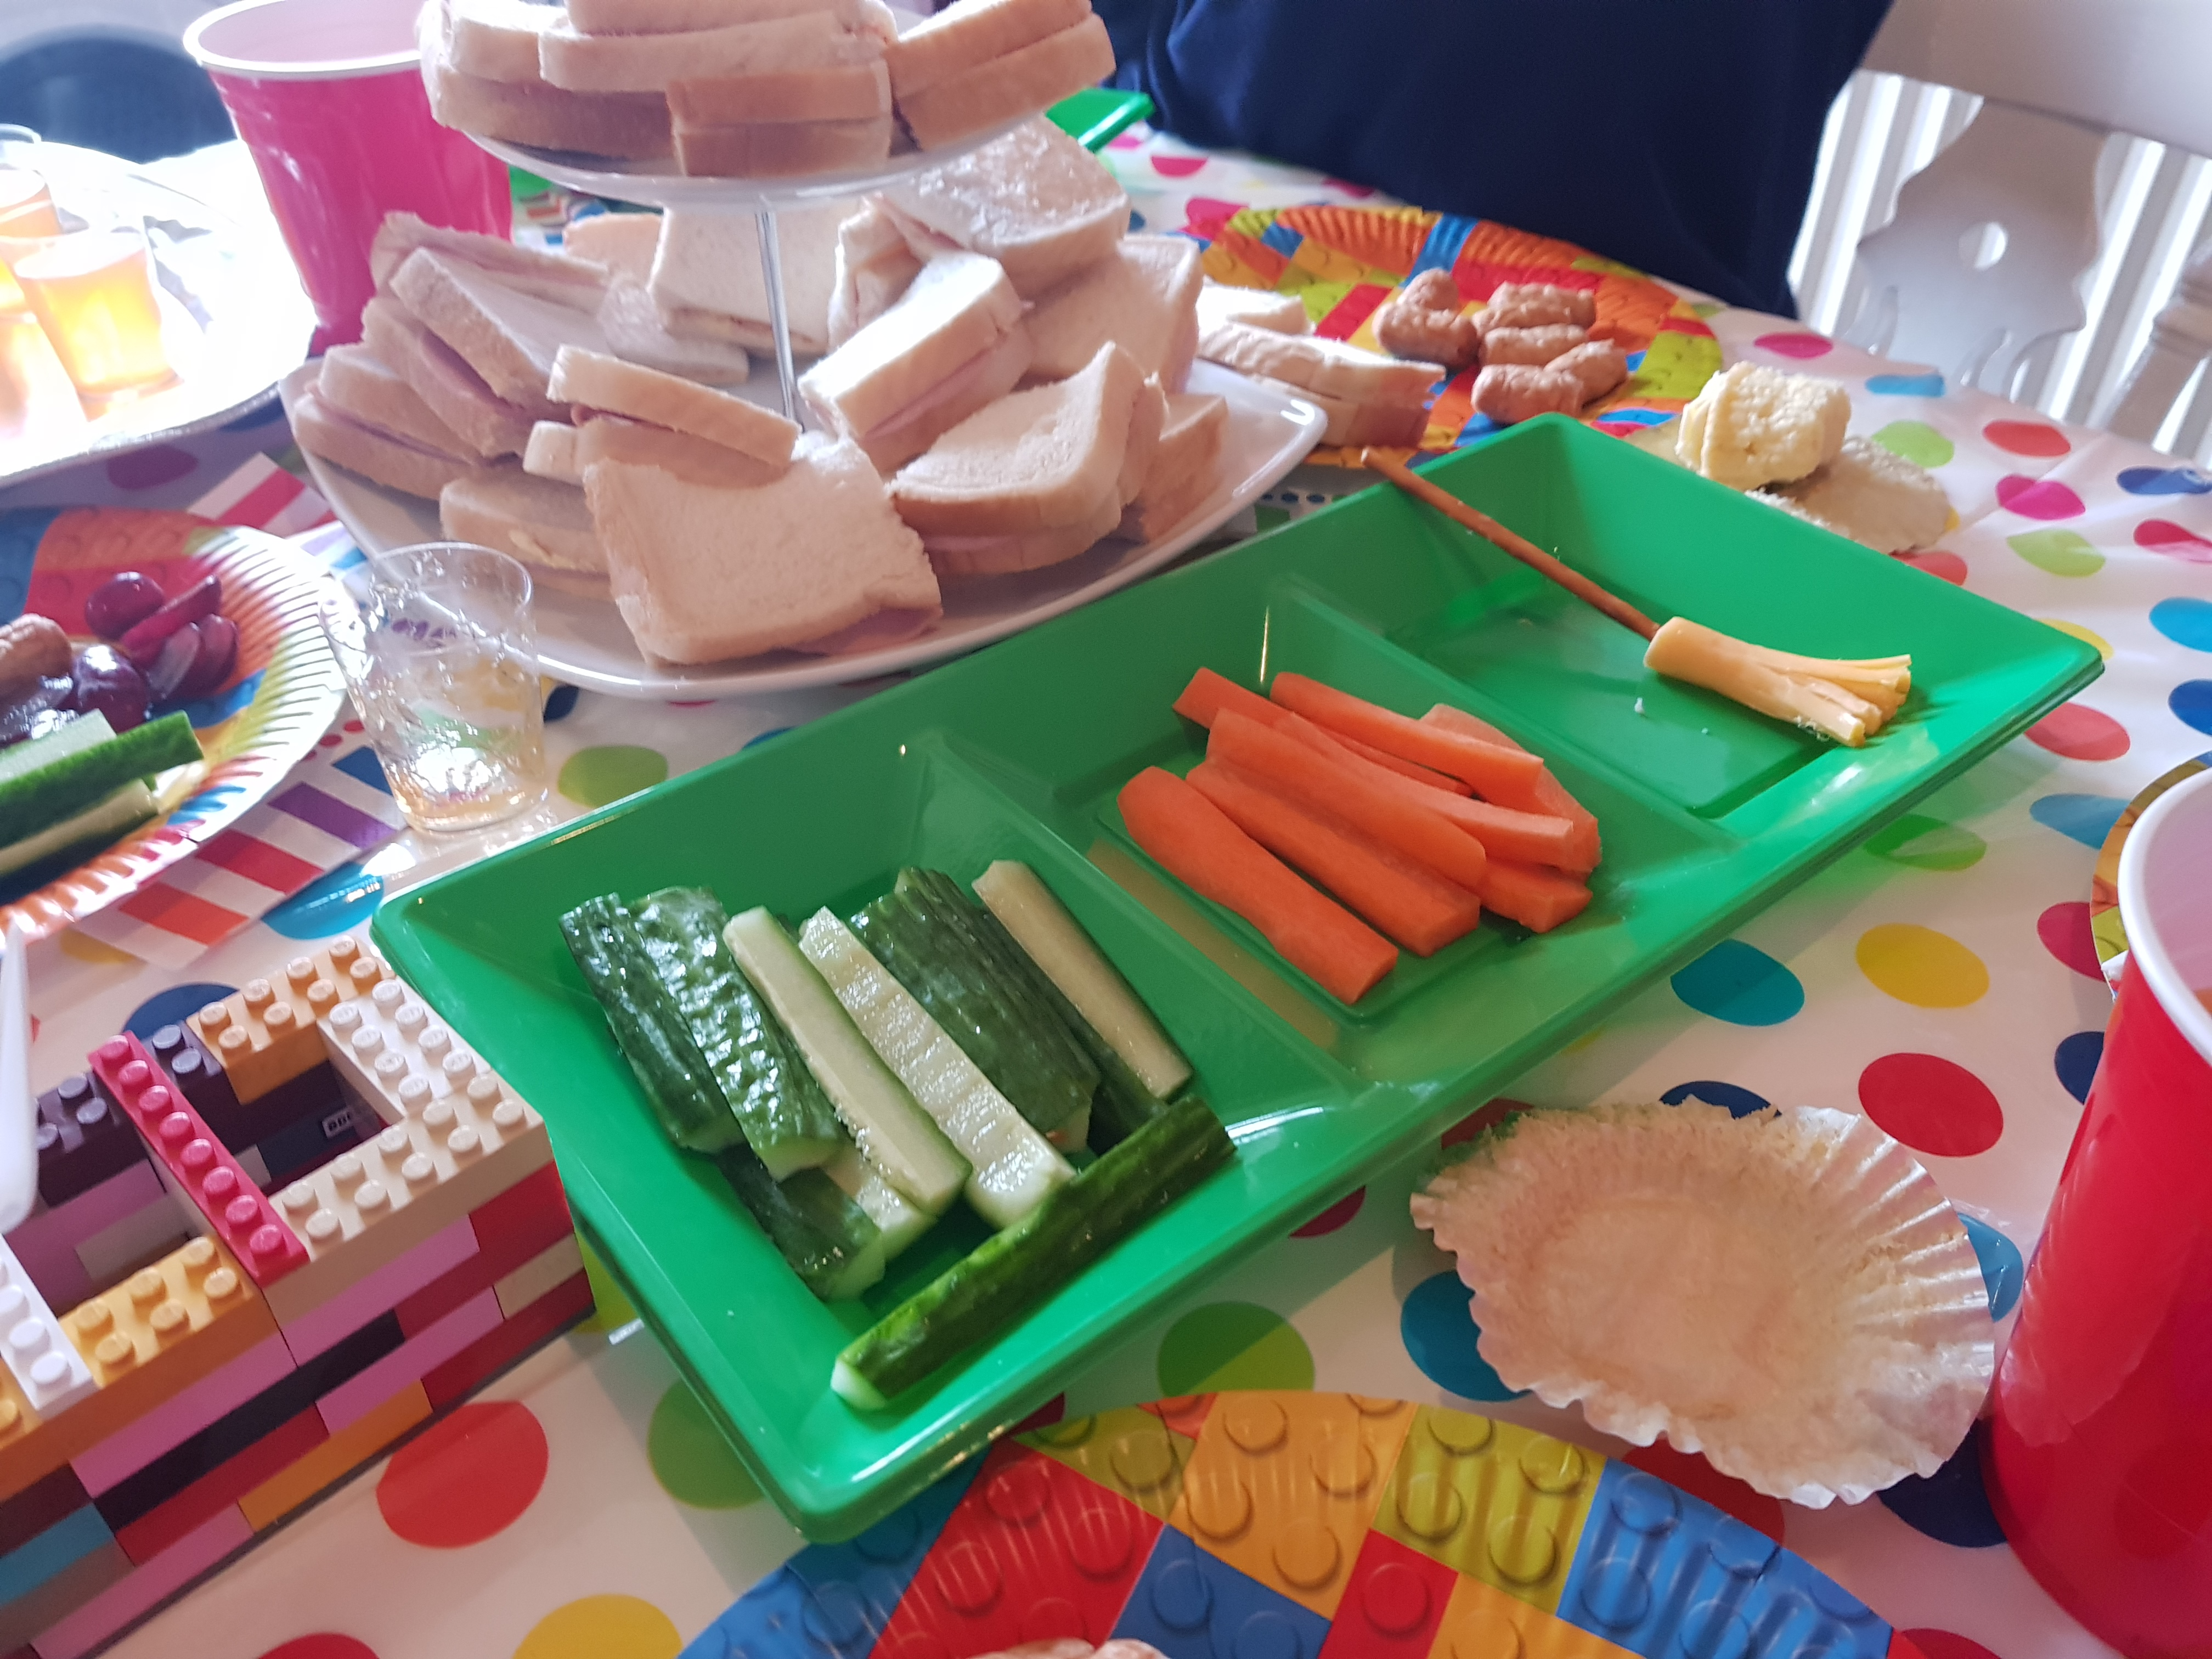 Cucumber sticks, carrot sticks, sandwiches